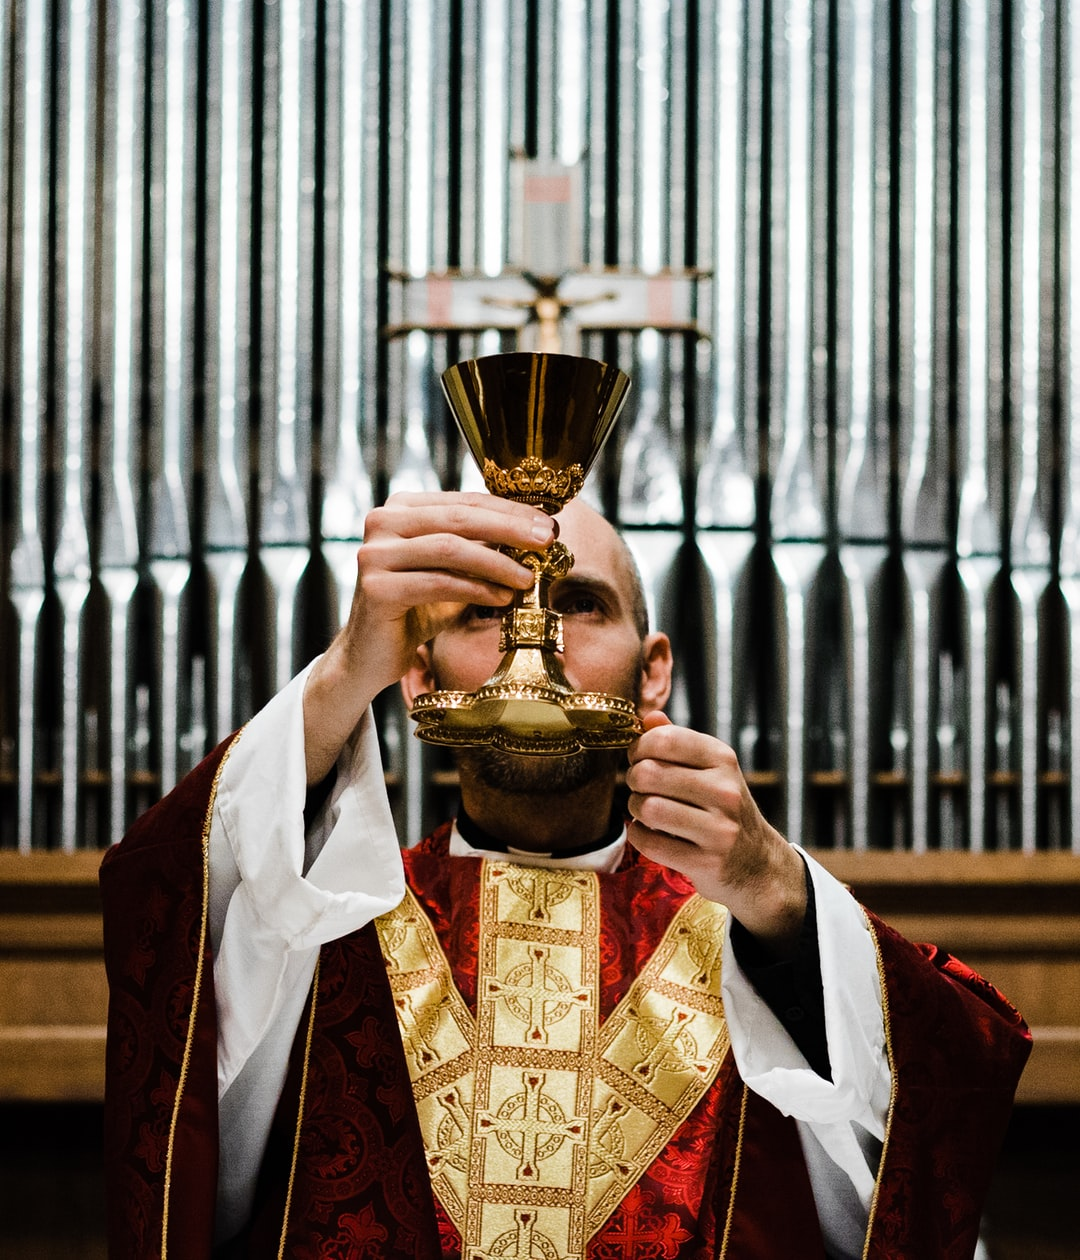 The consecration of the wine into the Precious Blood of Jesus Christ during a Catholic Mass.